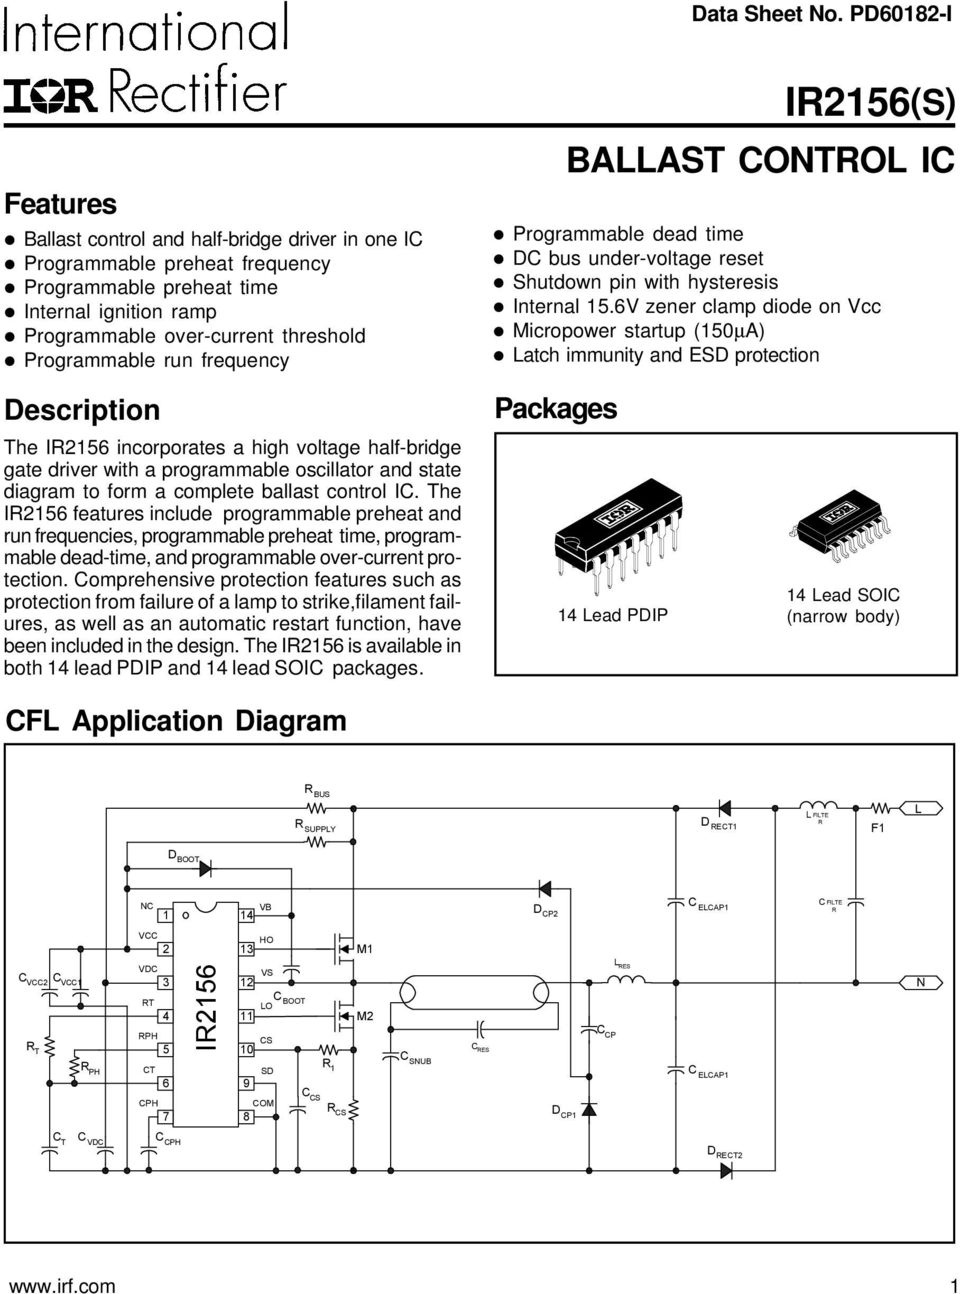 Ir2156s Ballast Control Ic Features Packages Description Cfl Ir2110 High Speed Power Mosfet Lead Assignments And Datasheet Descriptin The I56 Incrprates A Vltage Half Bridge Gate Driver With Prgrammable Scillatr